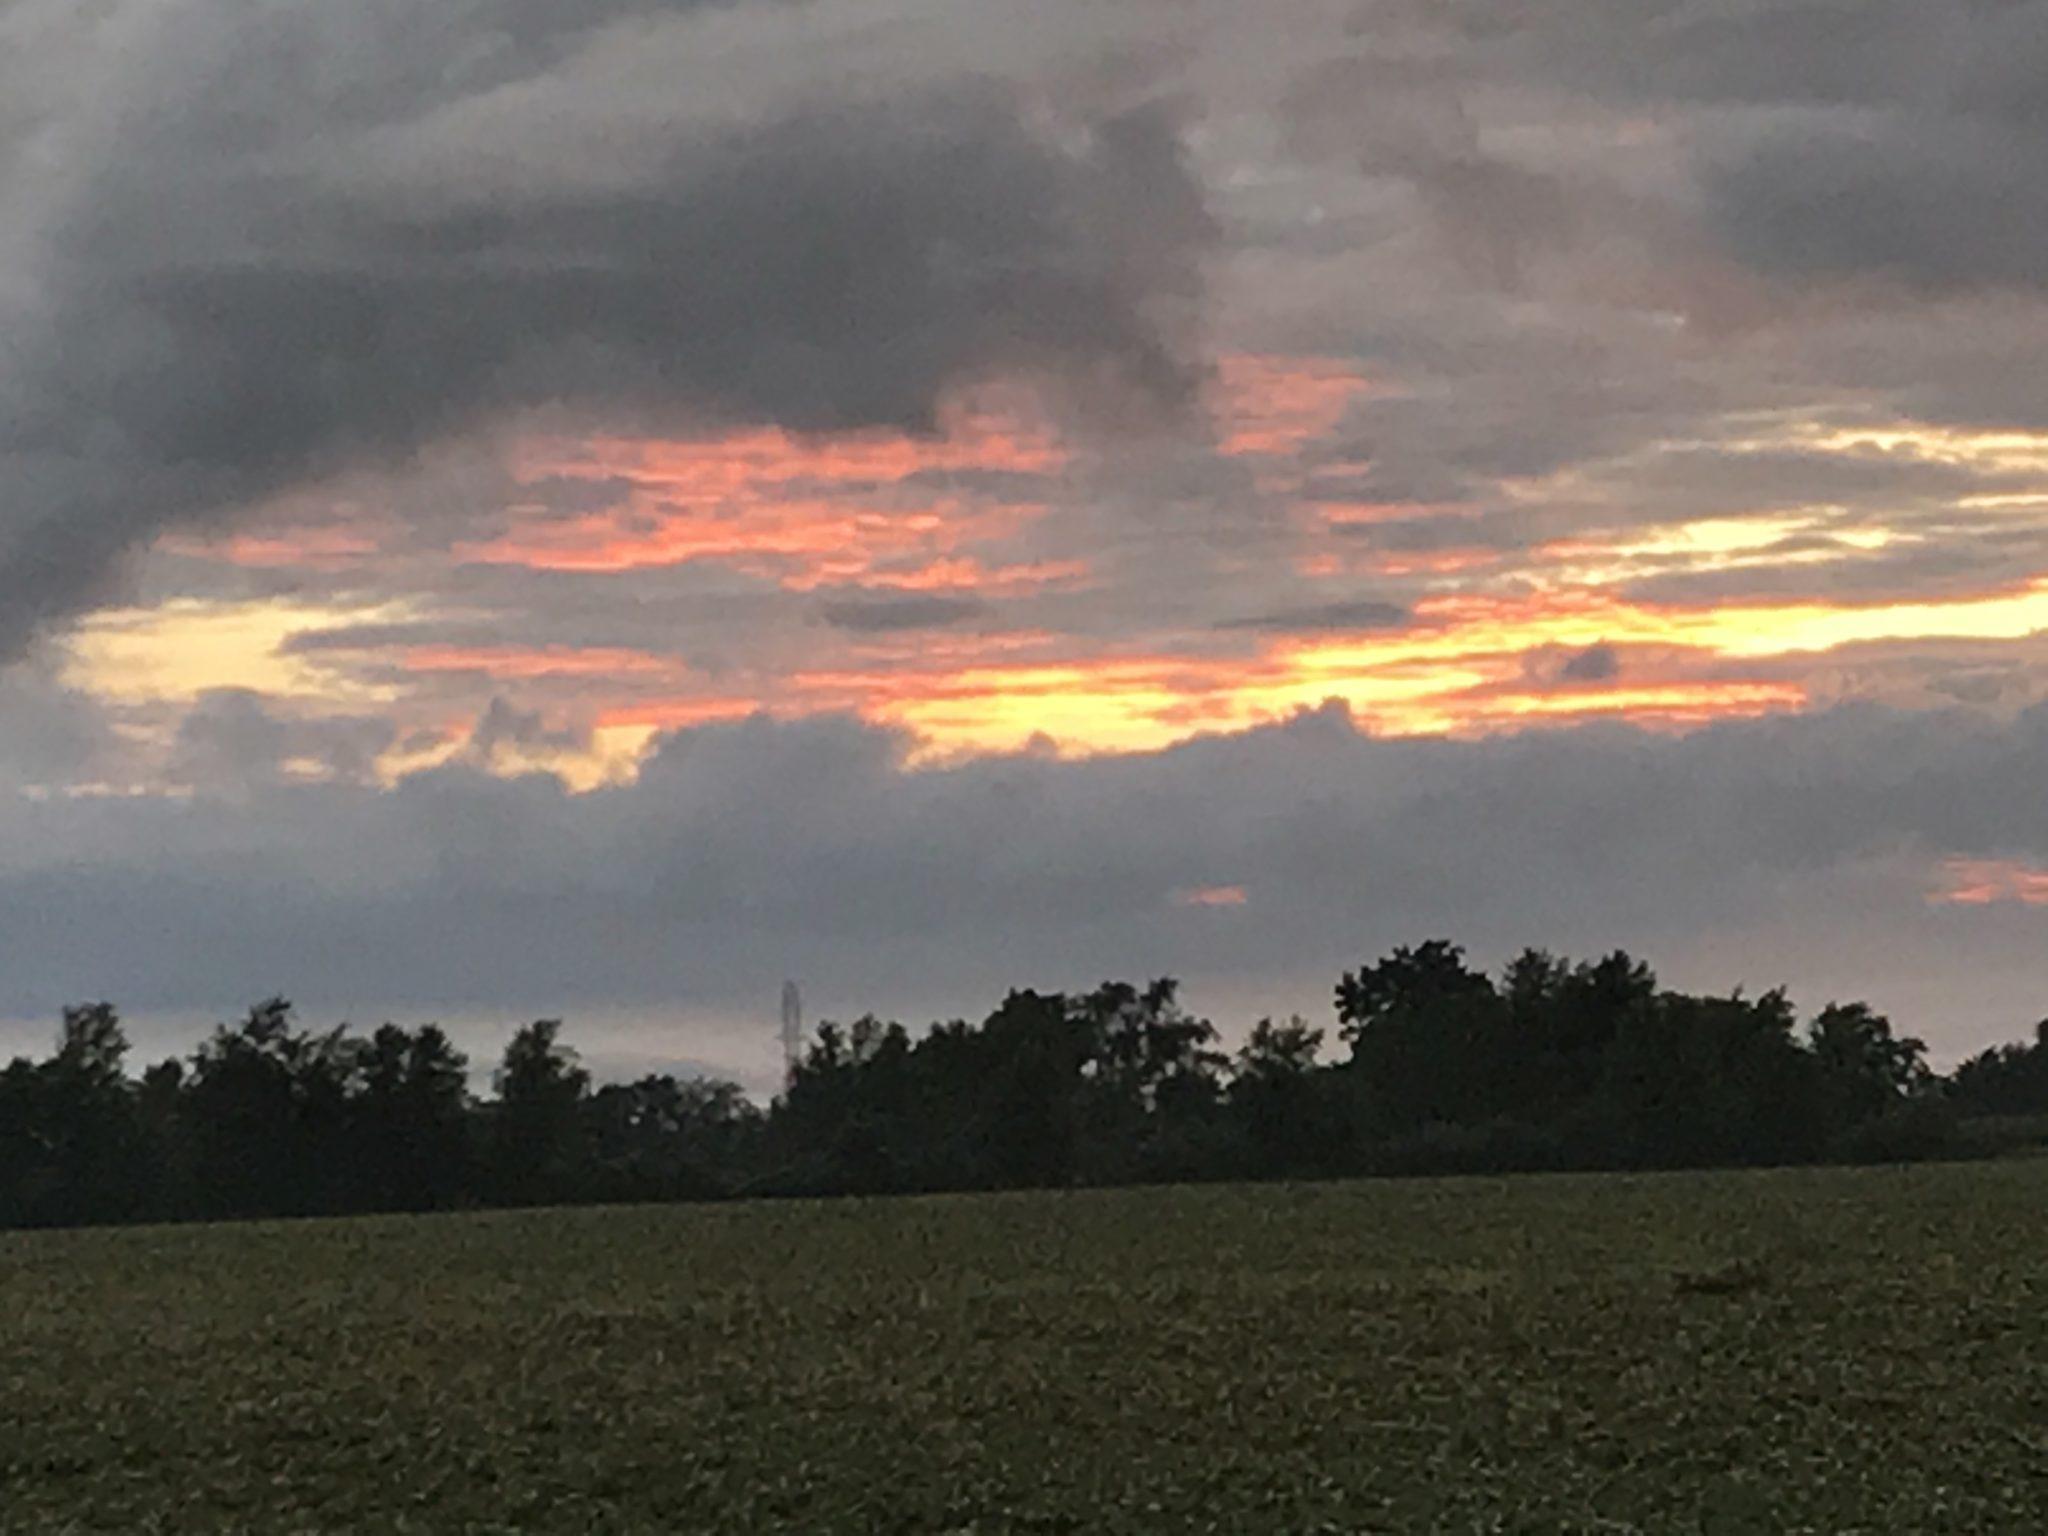 A successful hay harvest requires close attention to weather conditions. A red sky as nightfall occurs is a good omen that a dry day lies ahead. You just hope for several dry days in a row!